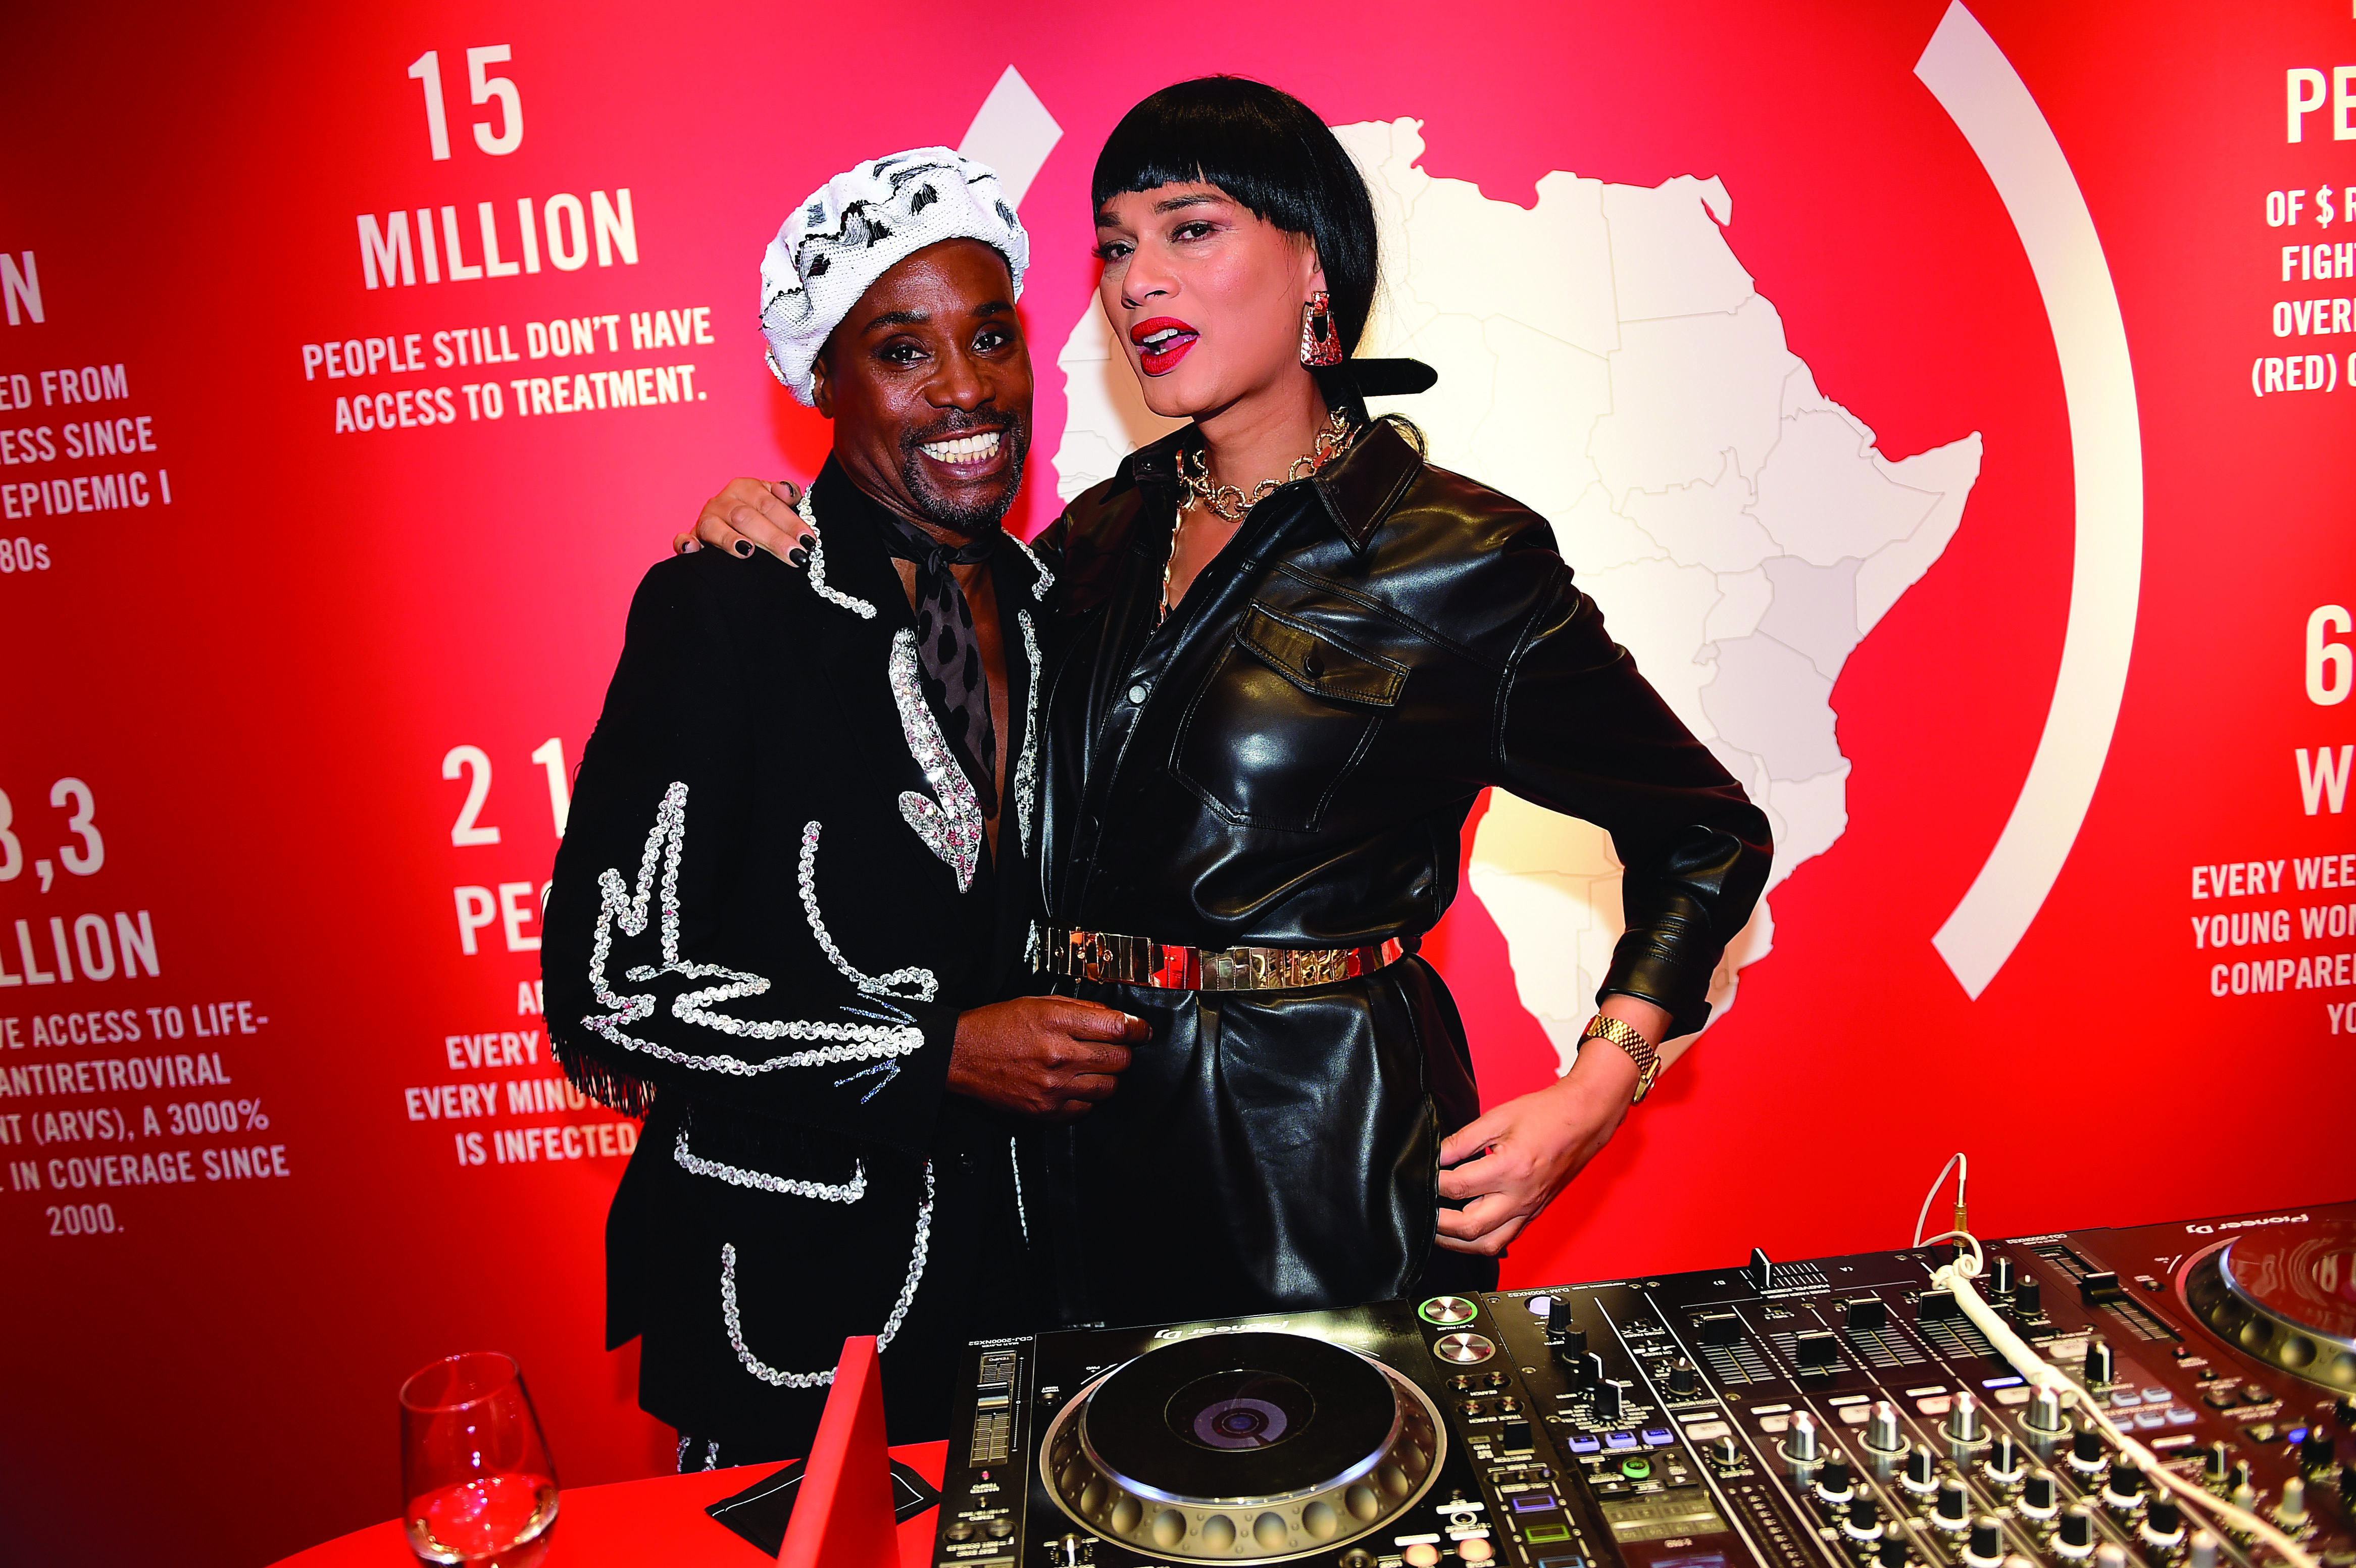 Billy Porter and DJ Sunny Jansen at Montblanc's Red event in Paris